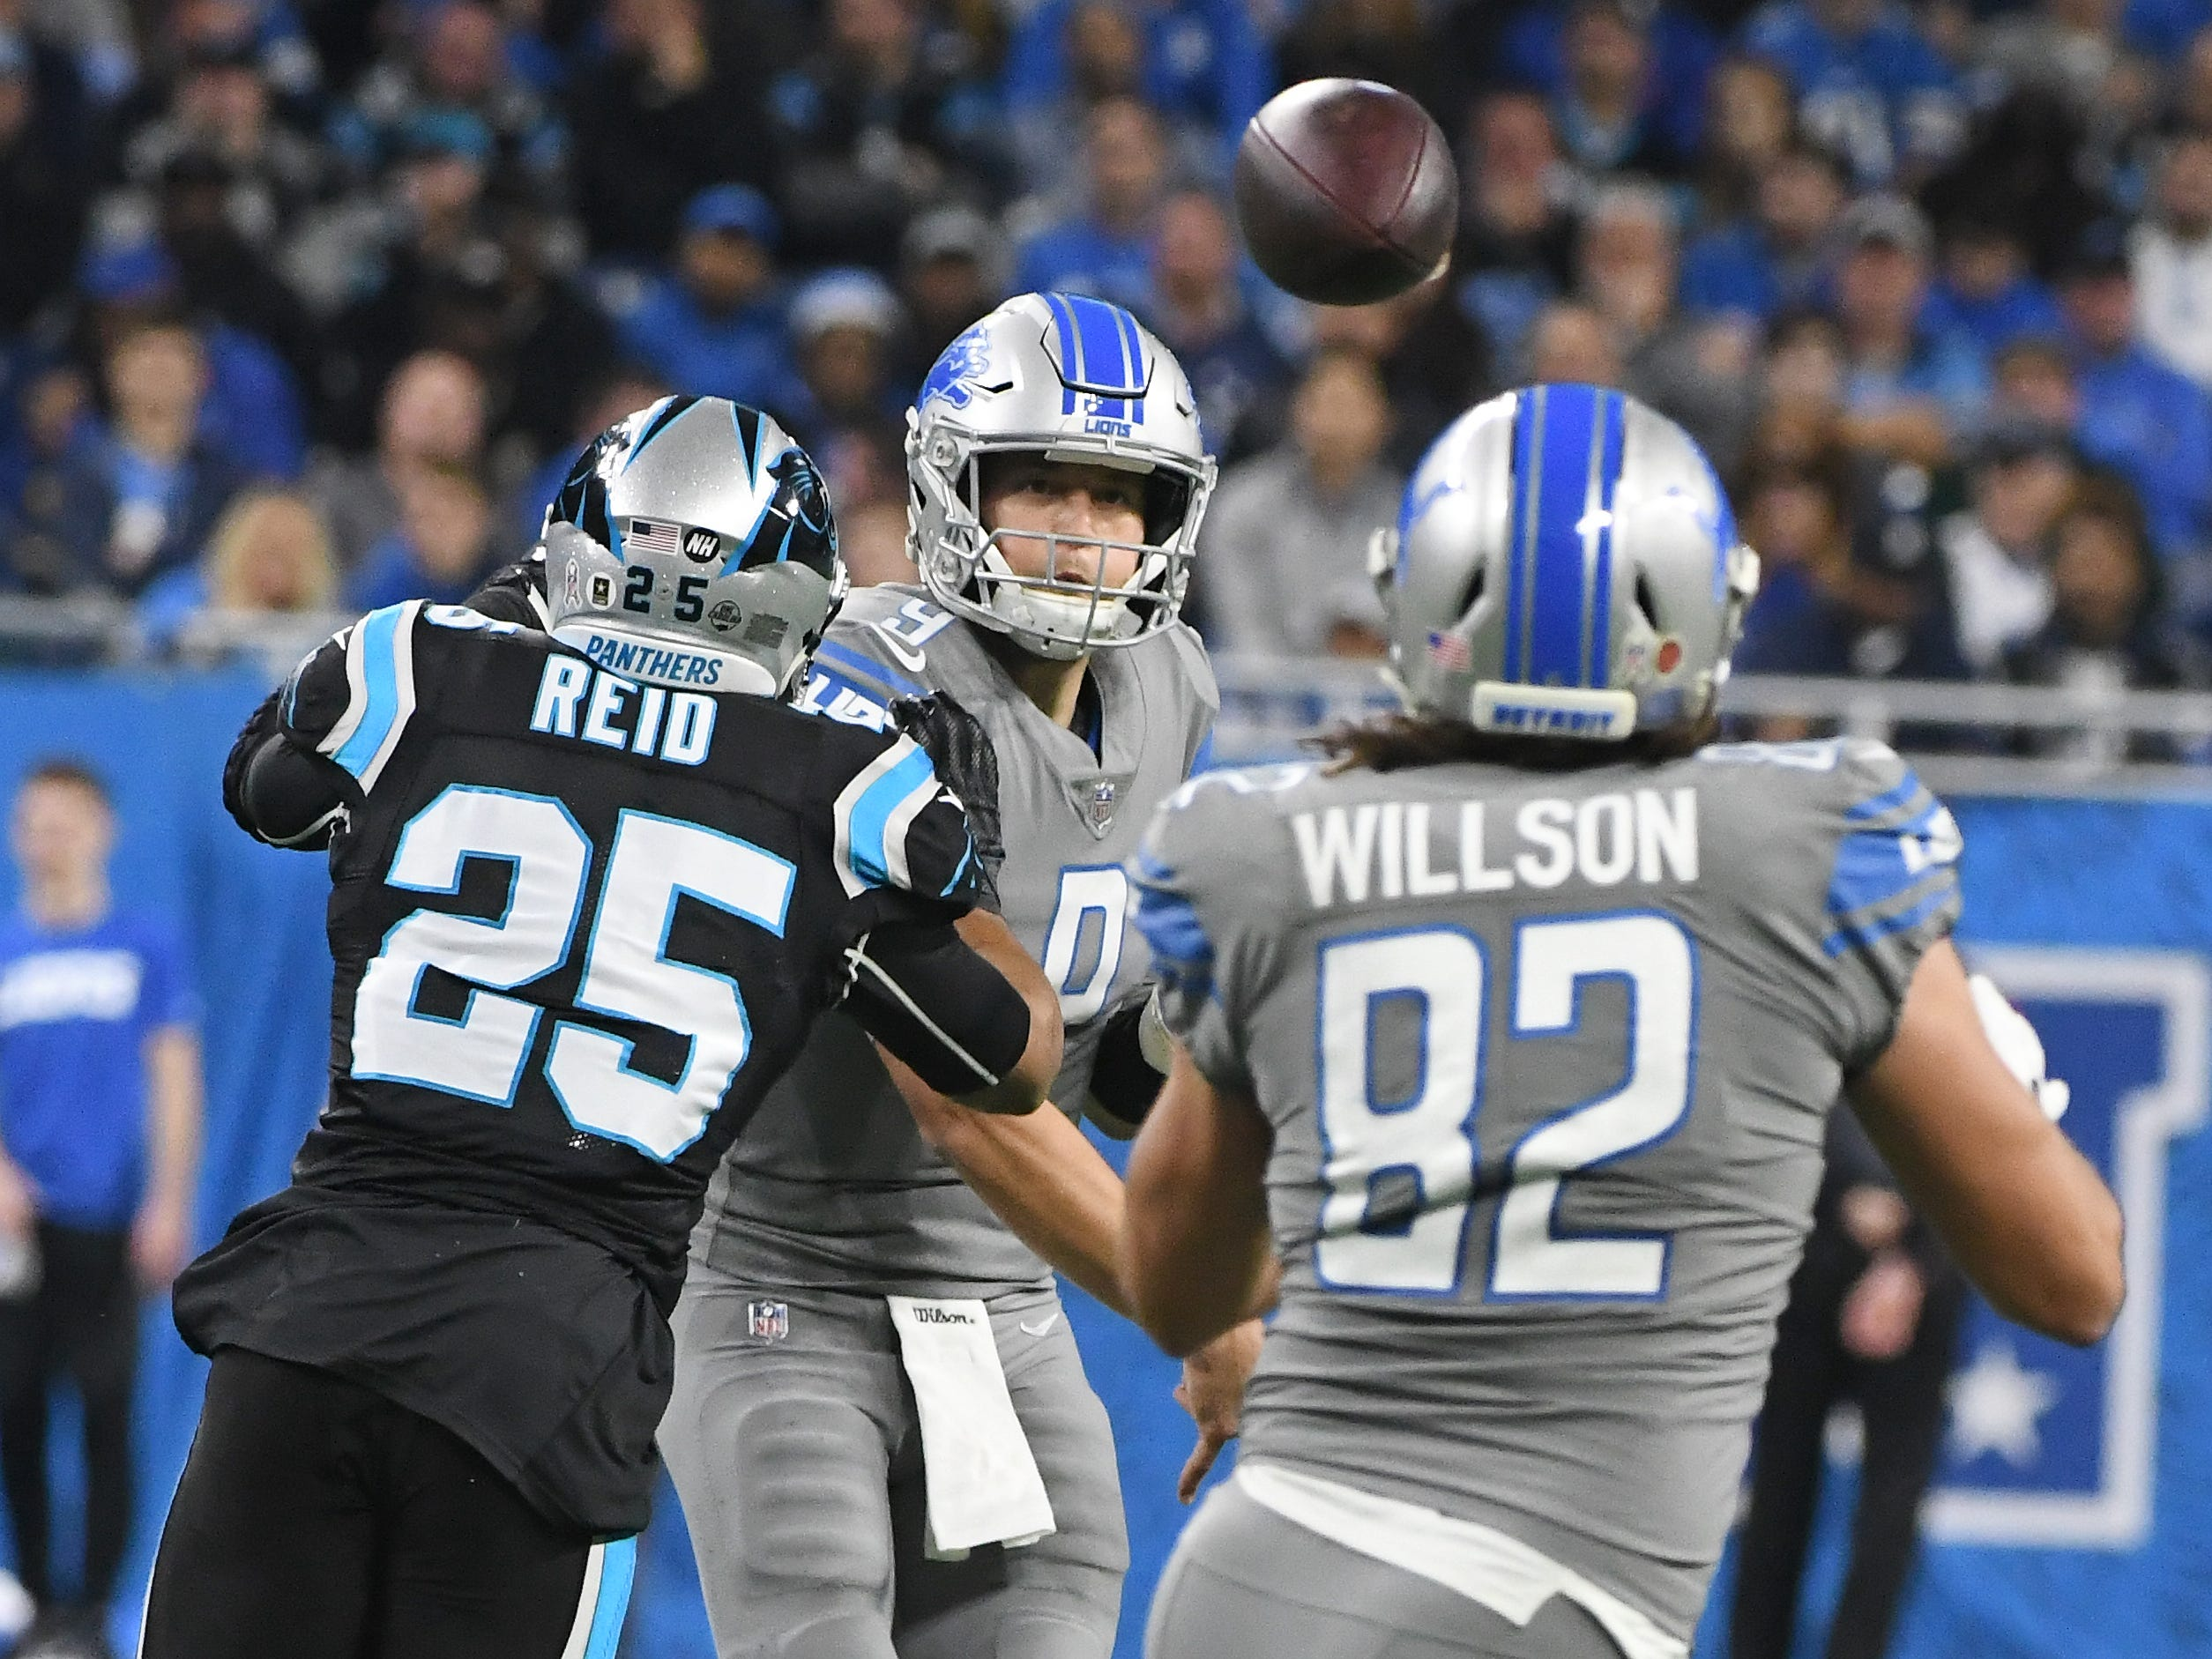 Lions quarterback Matthew Stafford throws an incompletion to tight end Luke Willson in the second quarter.